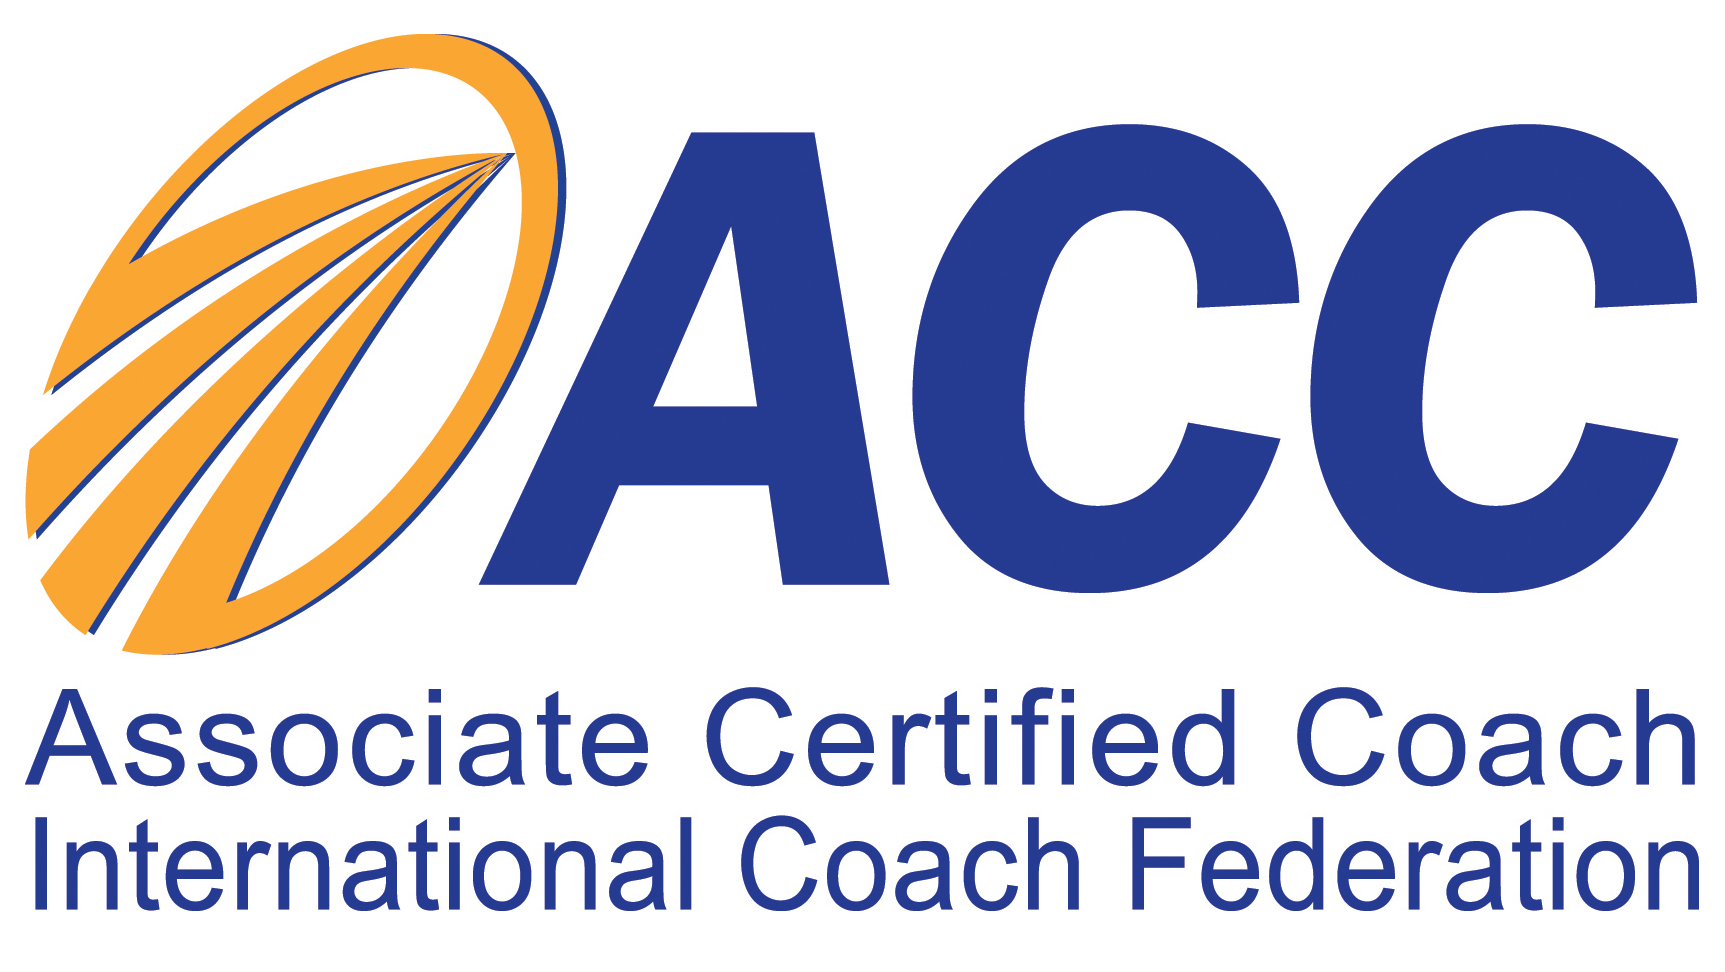 ICF International Coaching Federation Associate Certified Coach